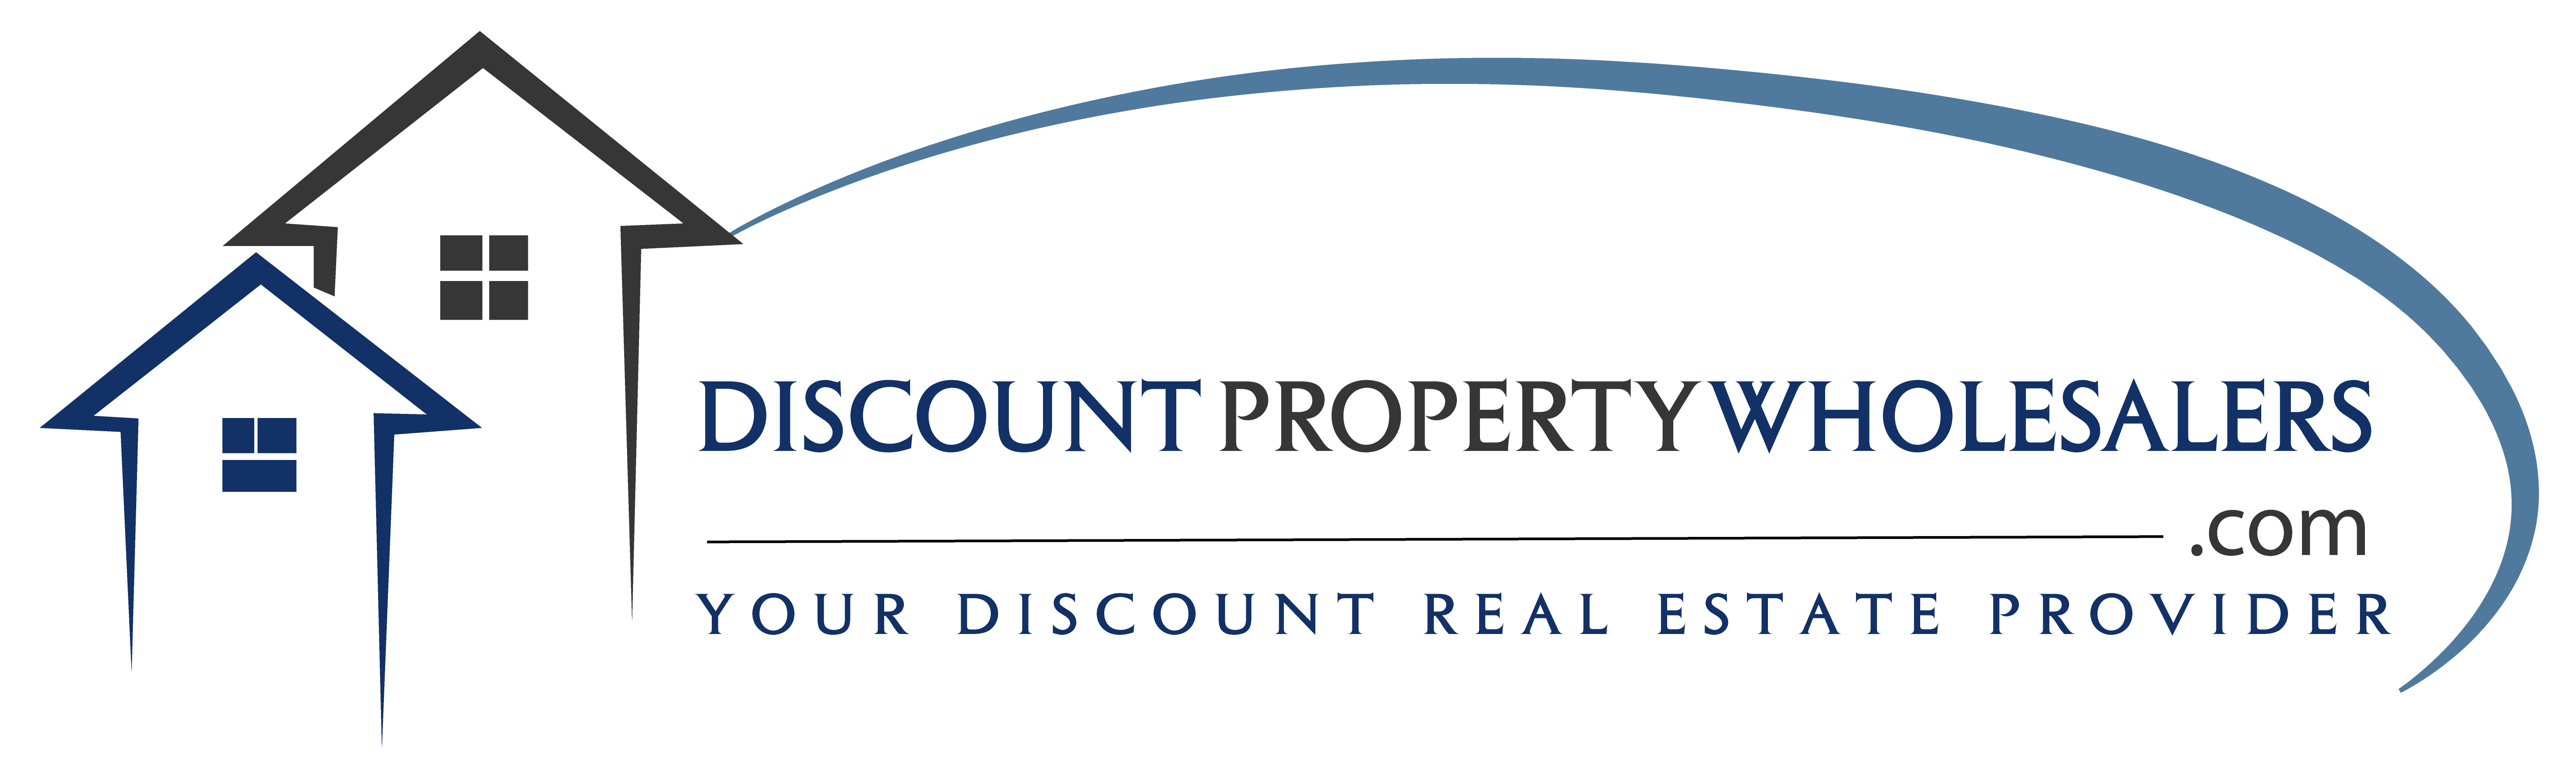 Discount Property Wholesalers